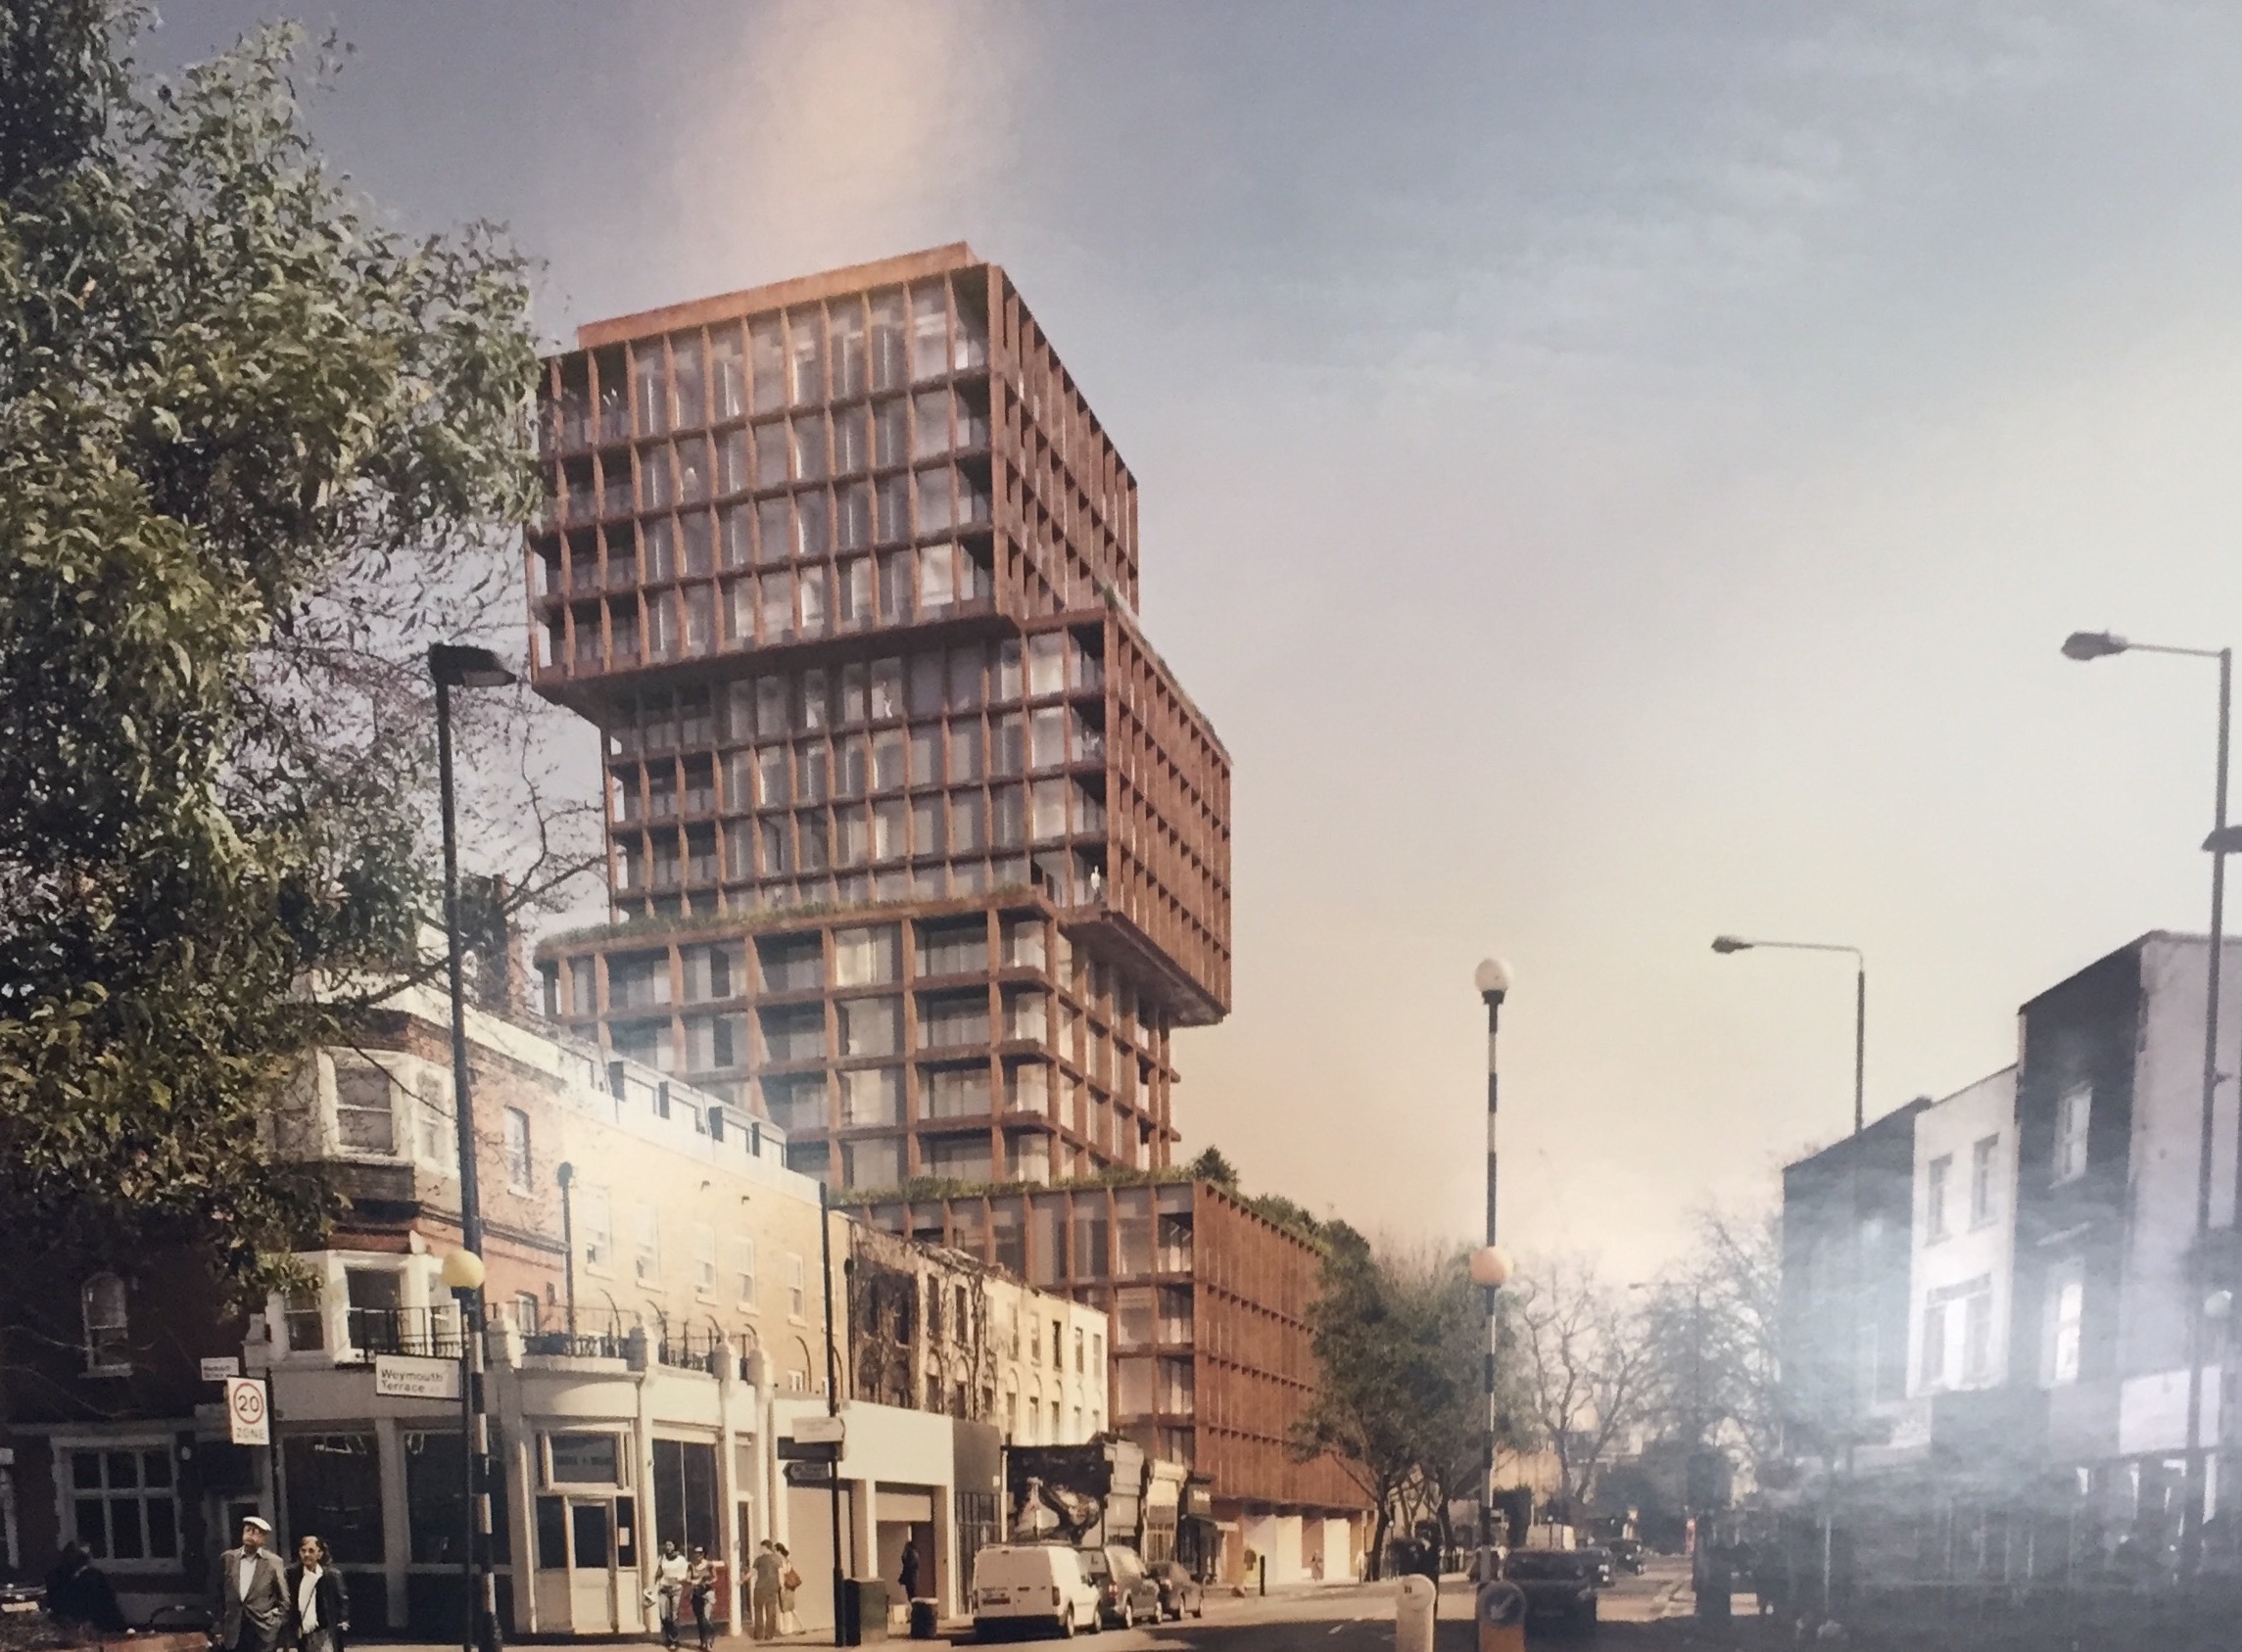 New building proposed on Hackney Rd